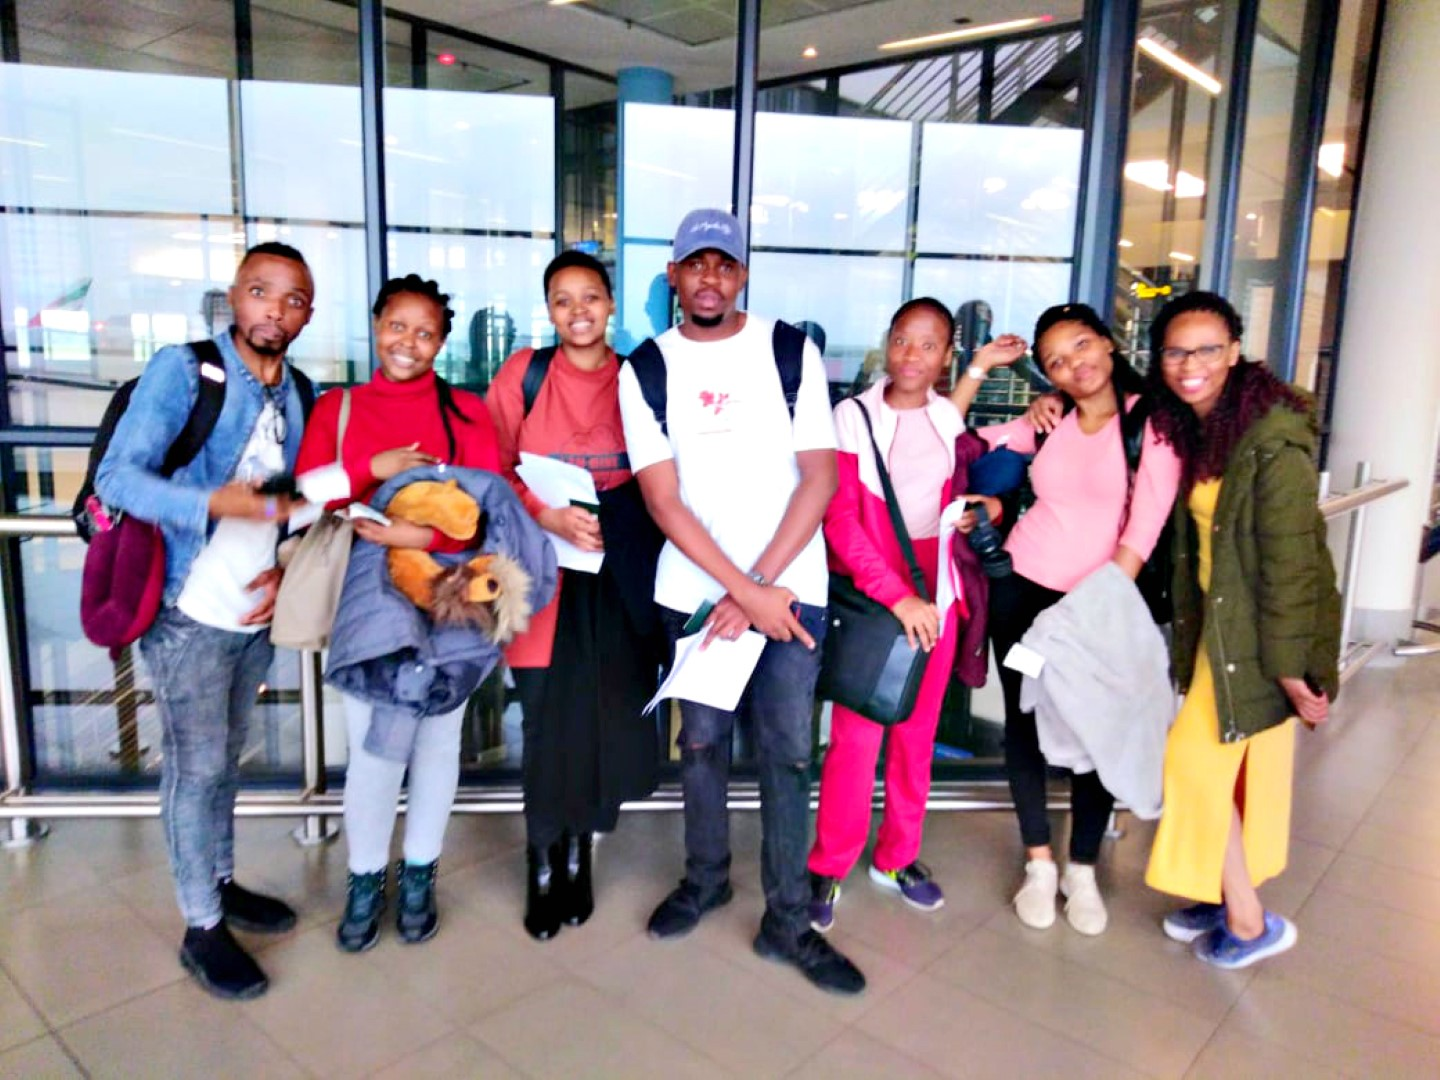 Six UKZN social work students were in Germany on an exchange programme for two weeks.